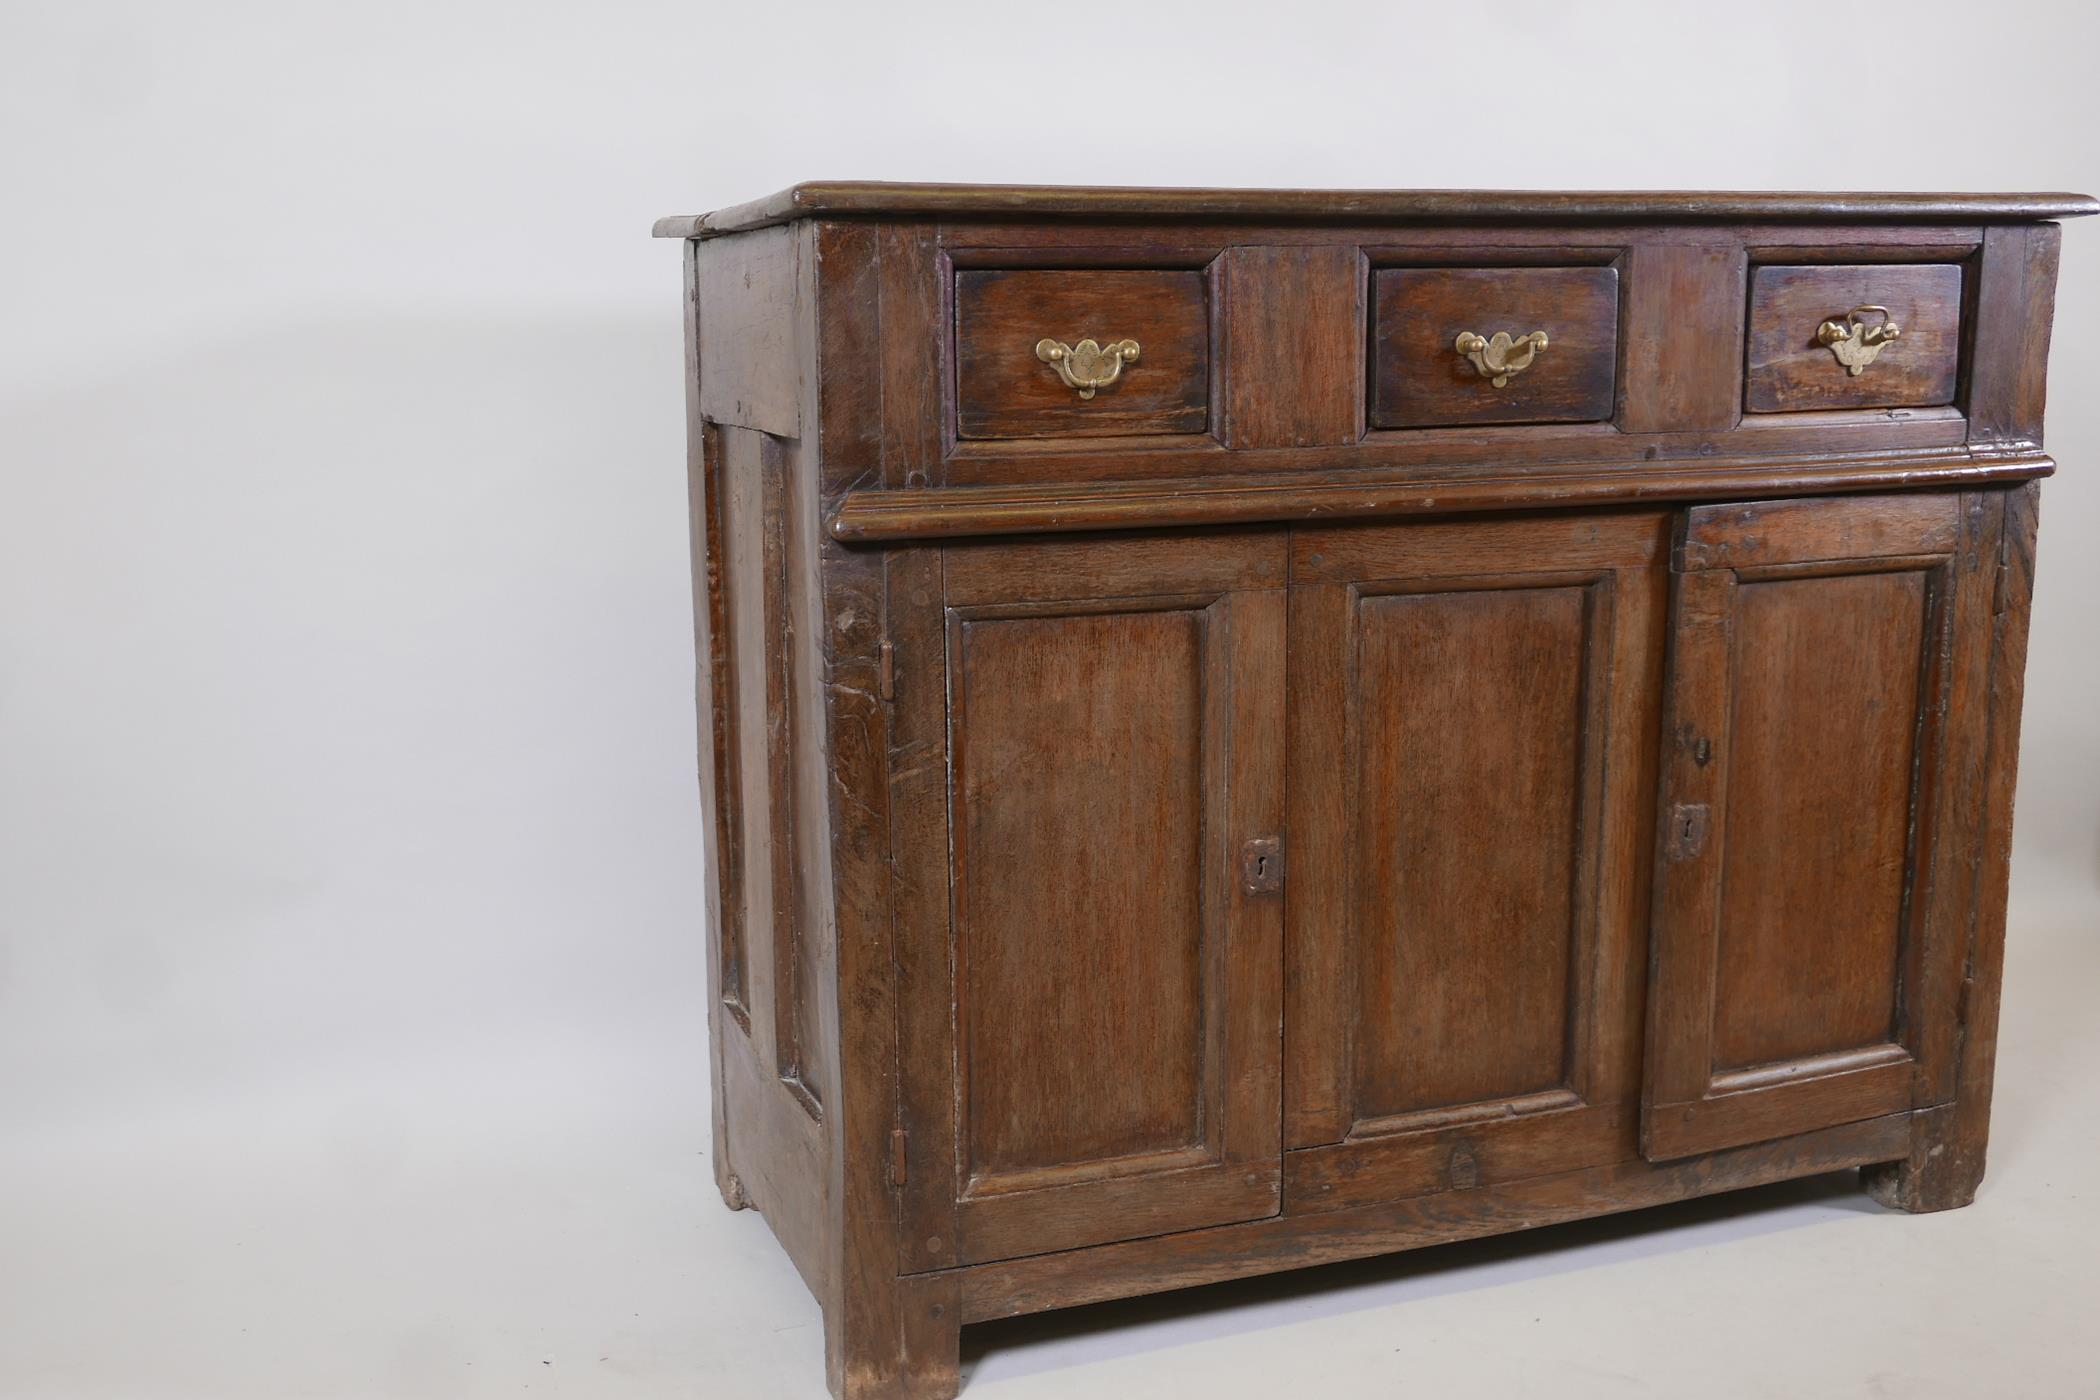 An antique oak side cabinet, with panelled ends and cupboards under three drawers, C18th and later - Image 2 of 5